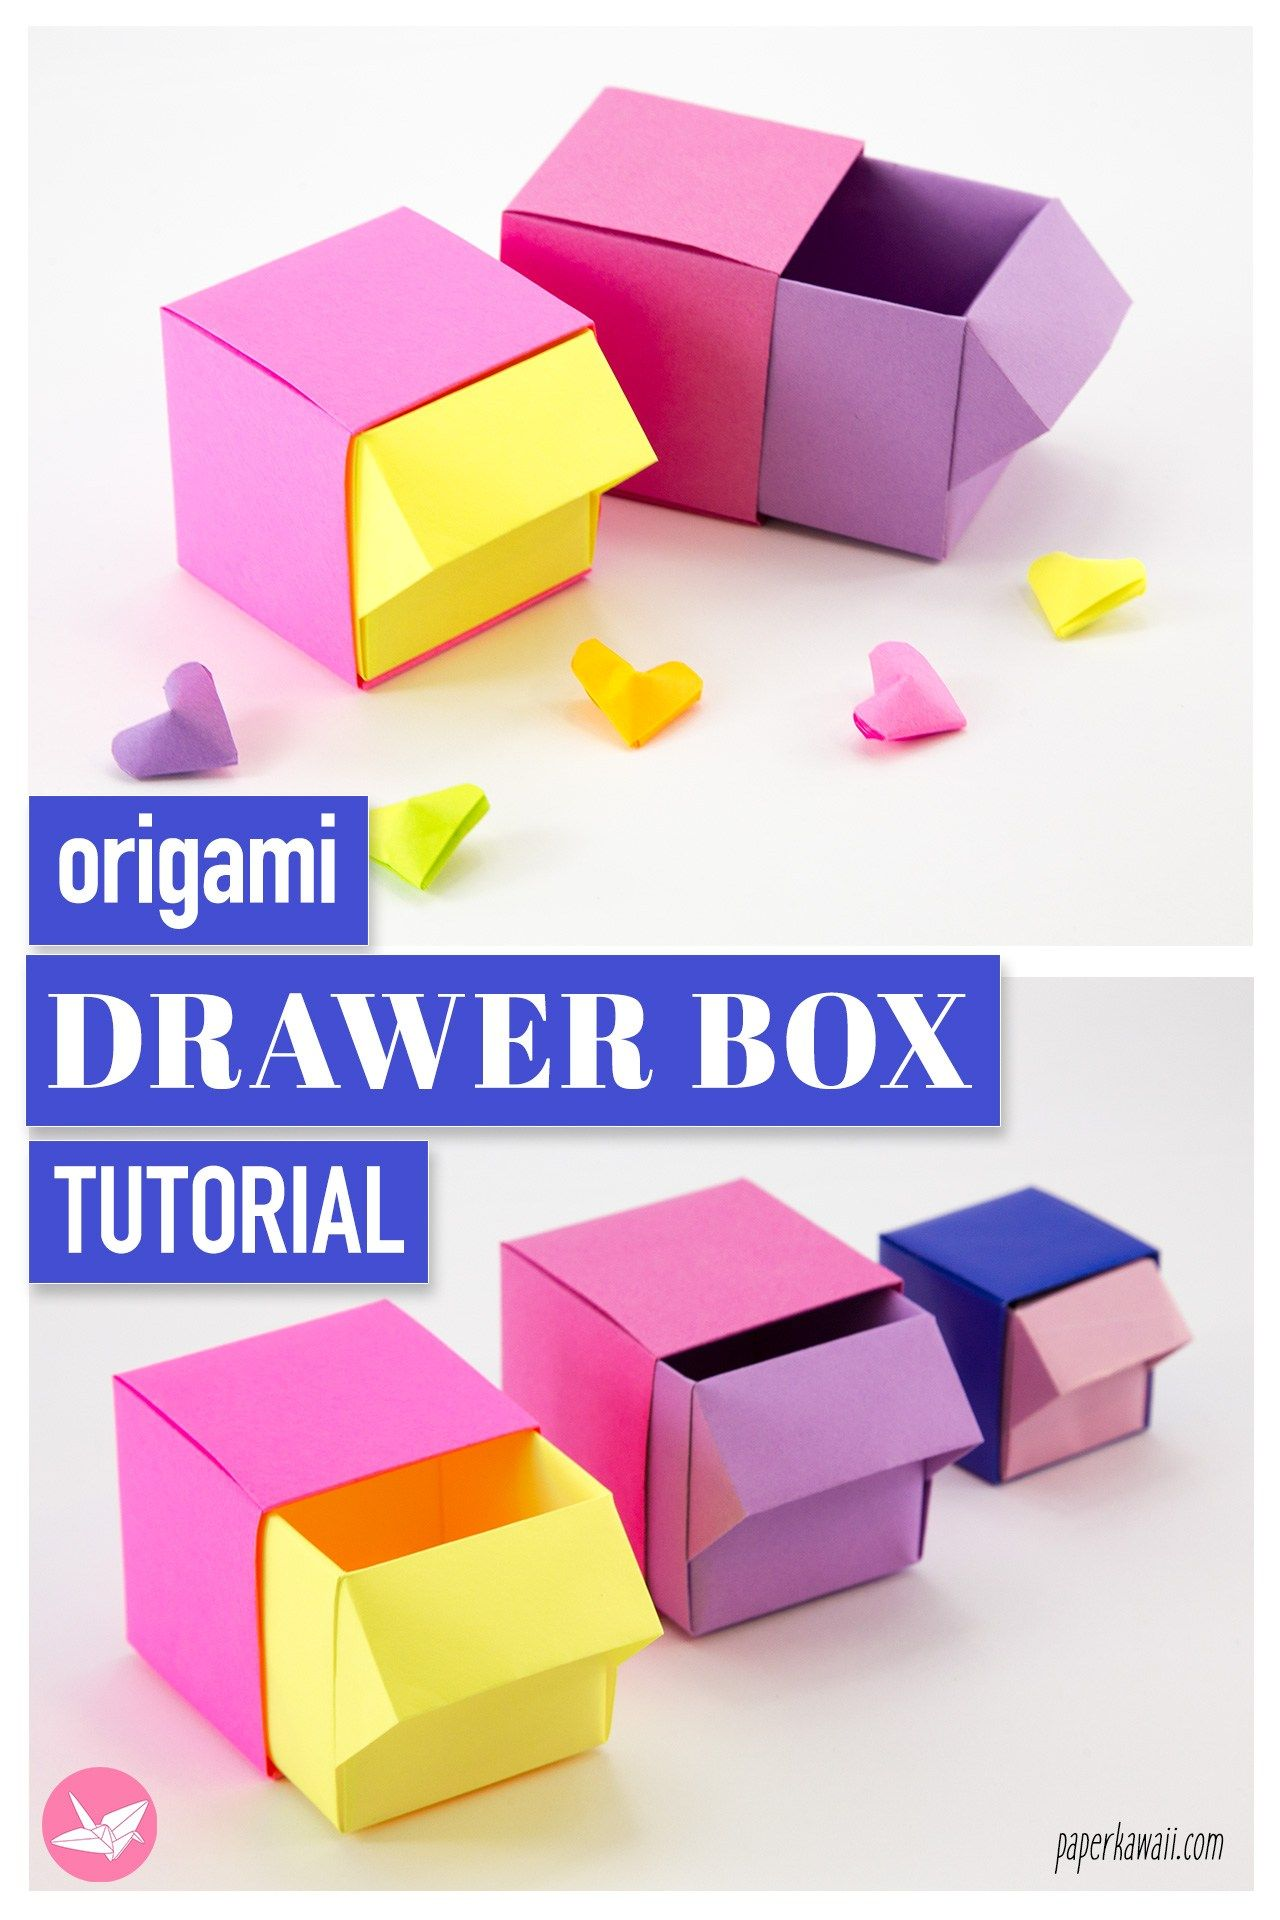 Origami Drawer Box Tutorial Marienkafer Pinterest Origami